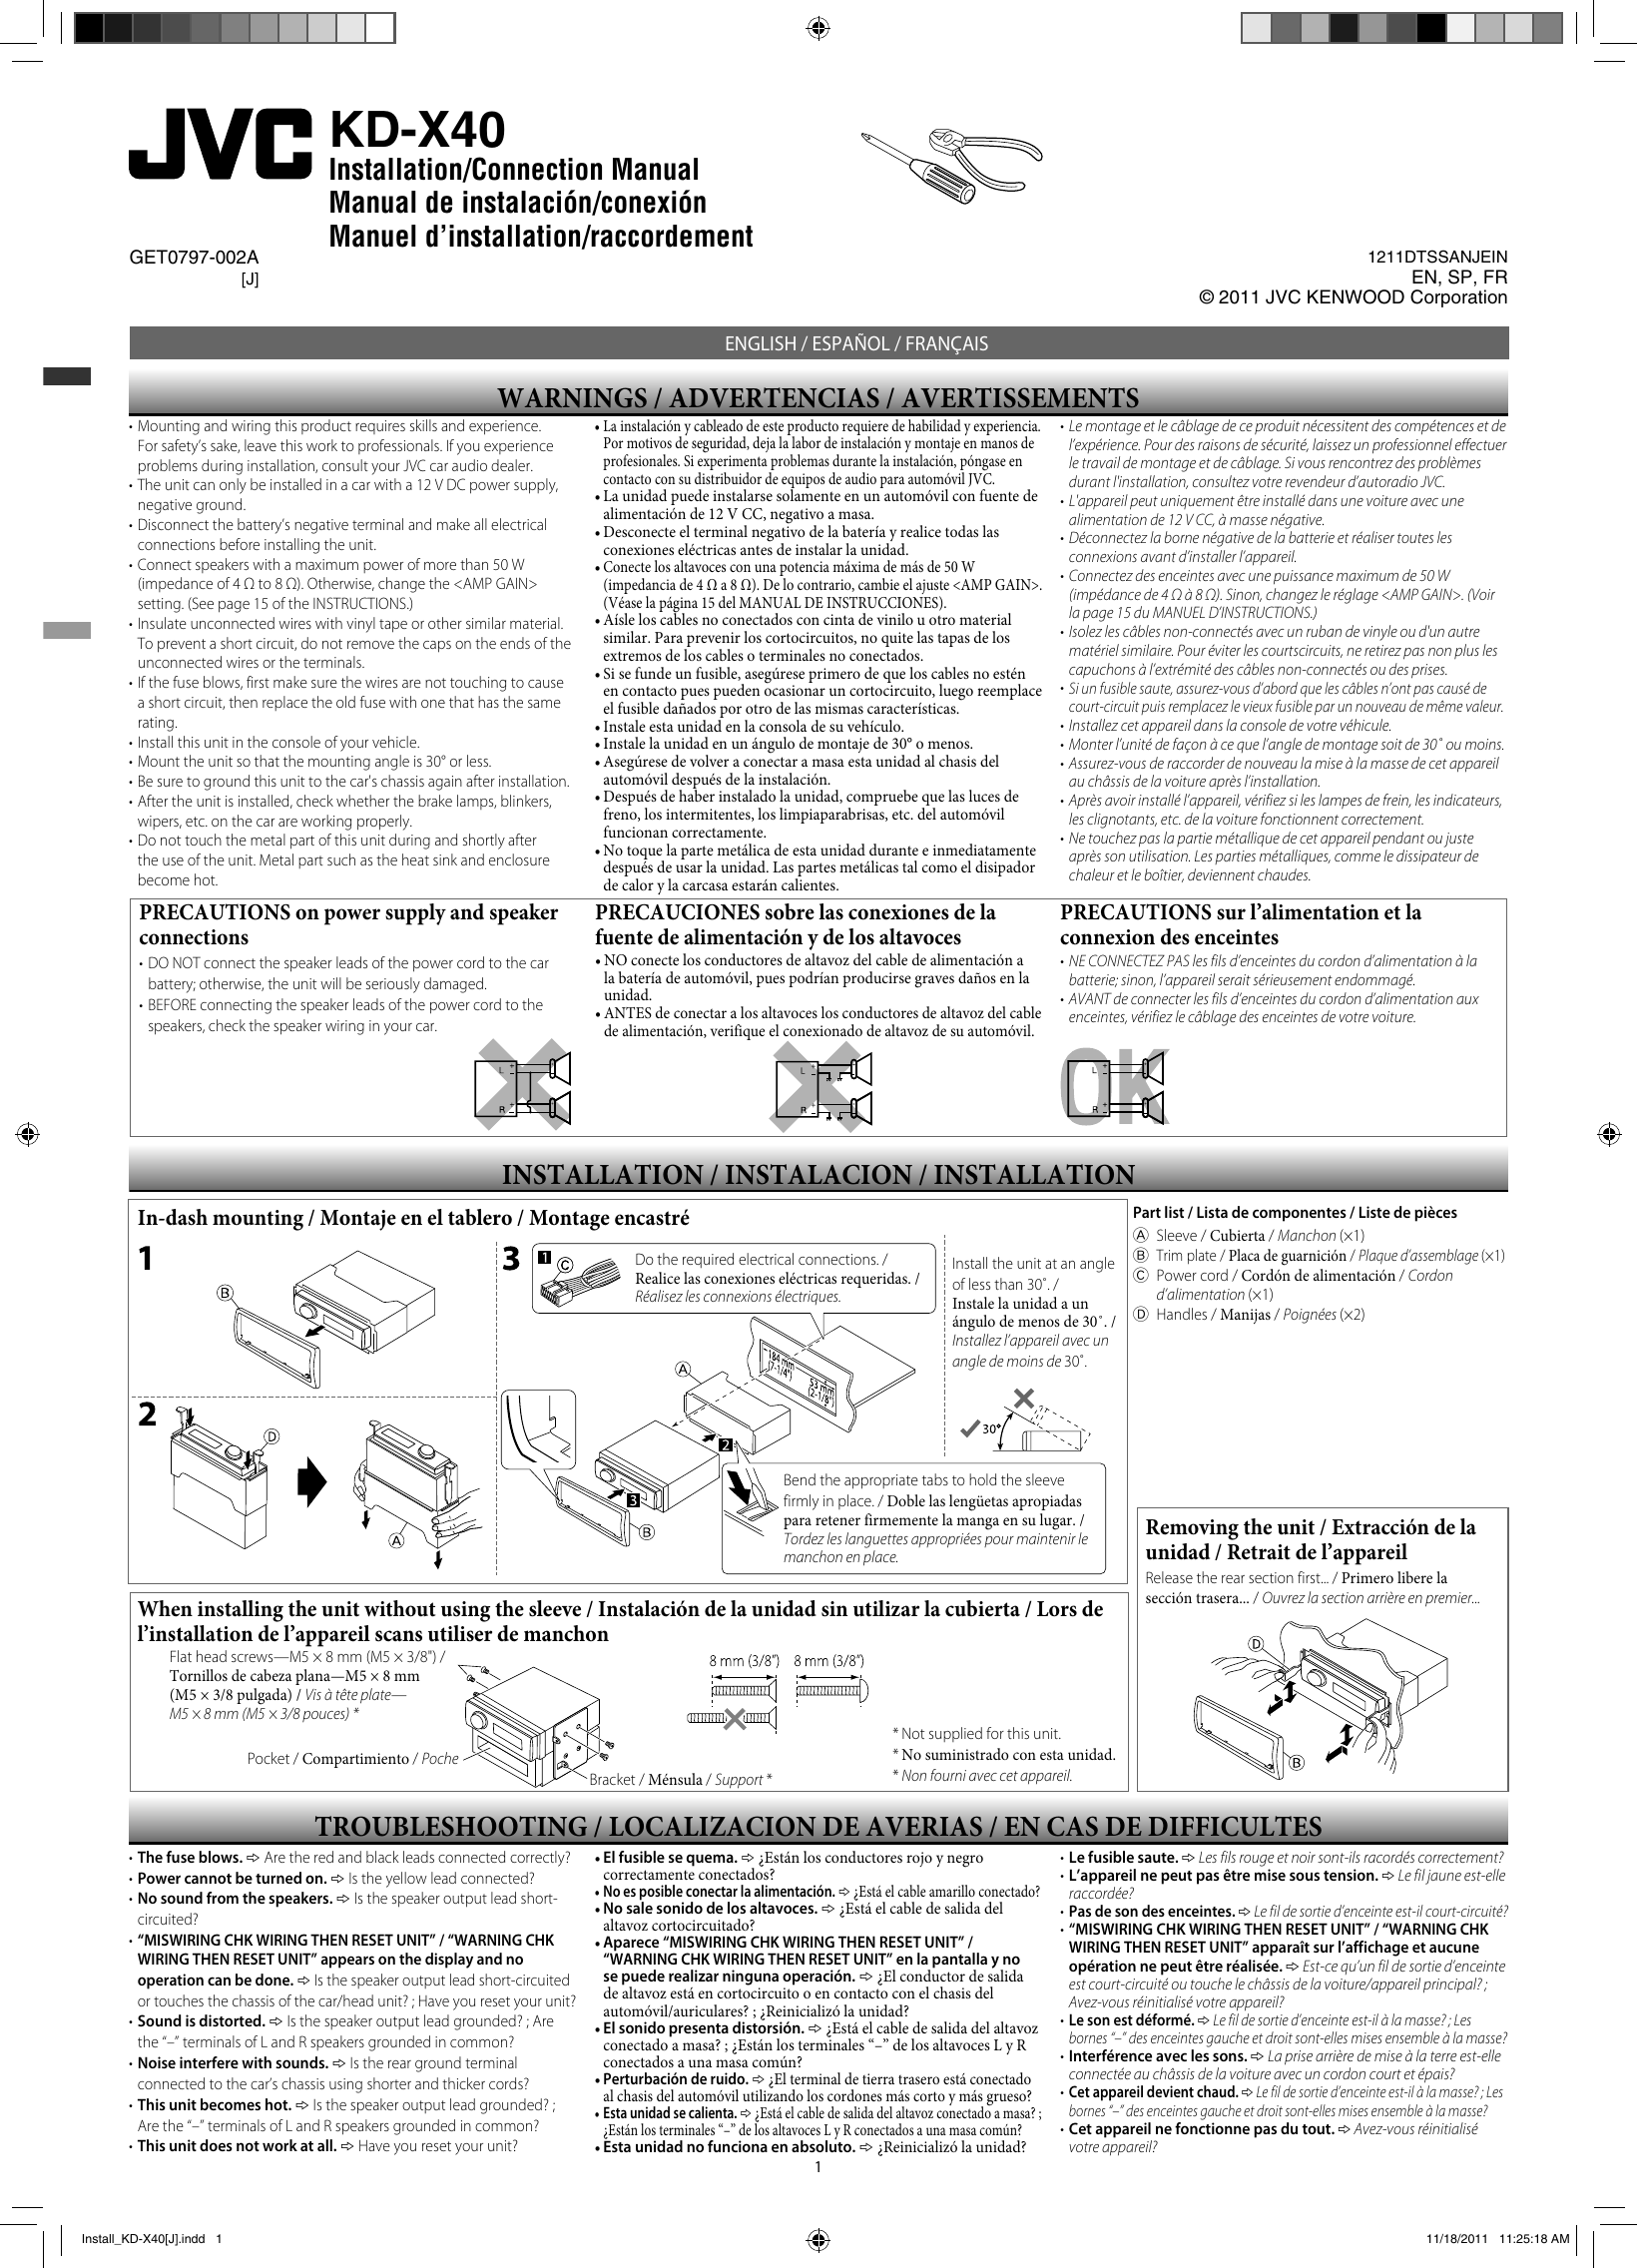 Jvc Kd-Sr61 Wiring Harness Diagram from usermanual.wiki